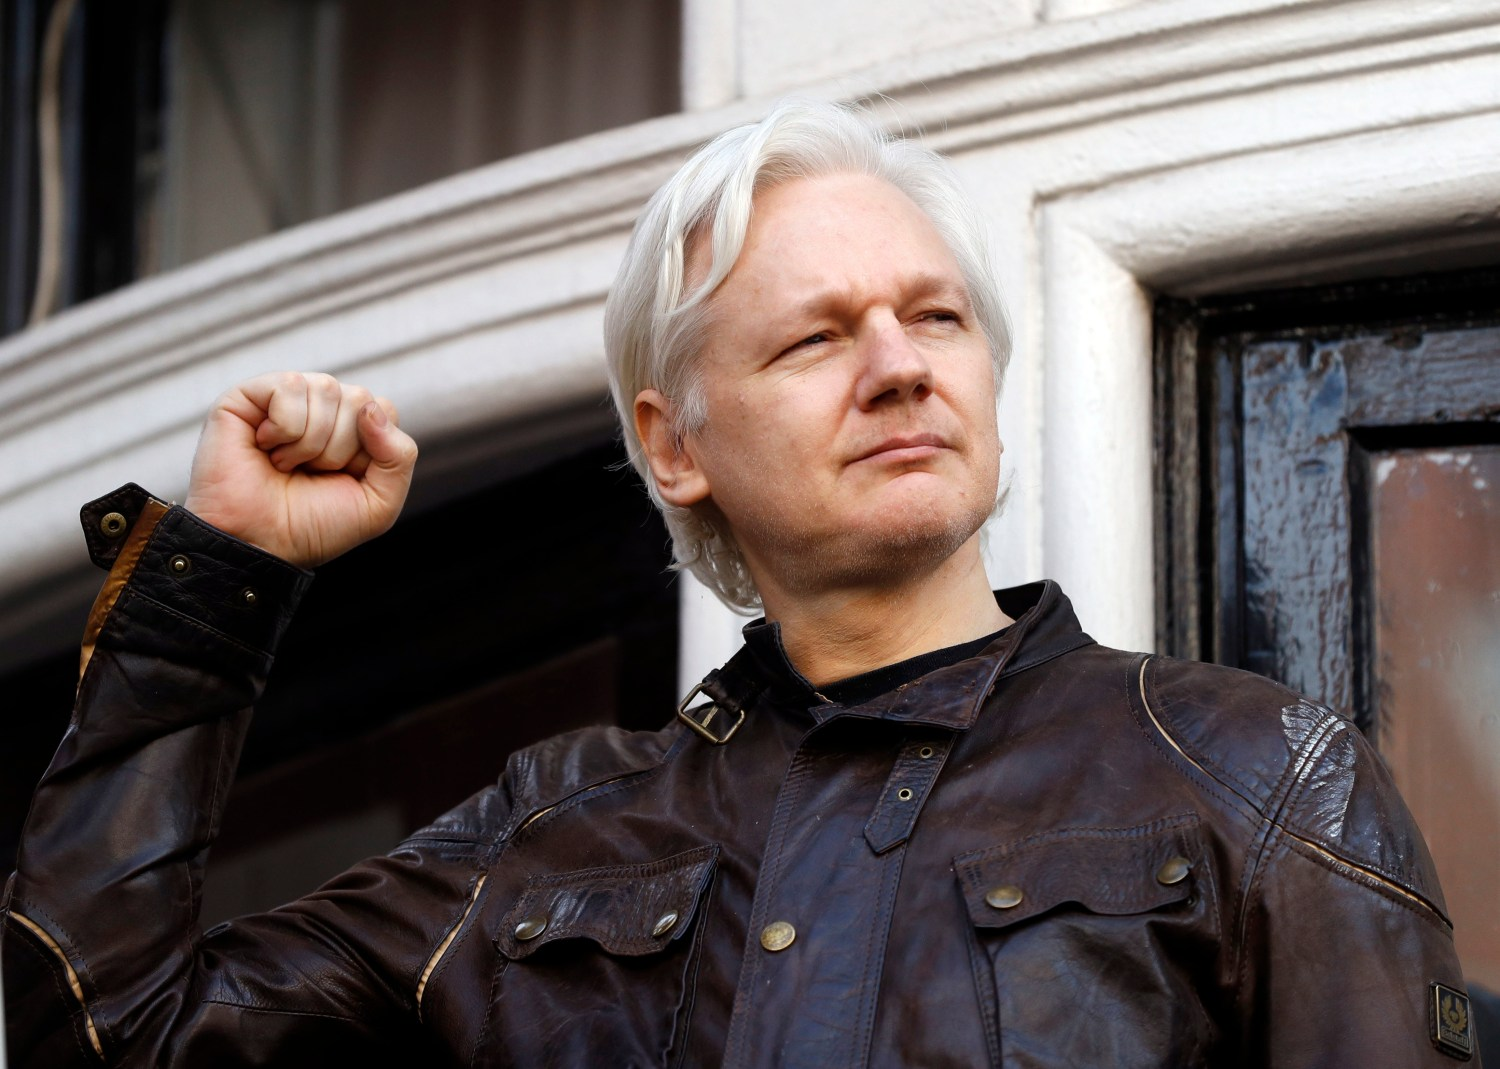 What Julian Assange's arrest means for journalism, the ritual of reading in print, a Vatican interview with Steve Bannon